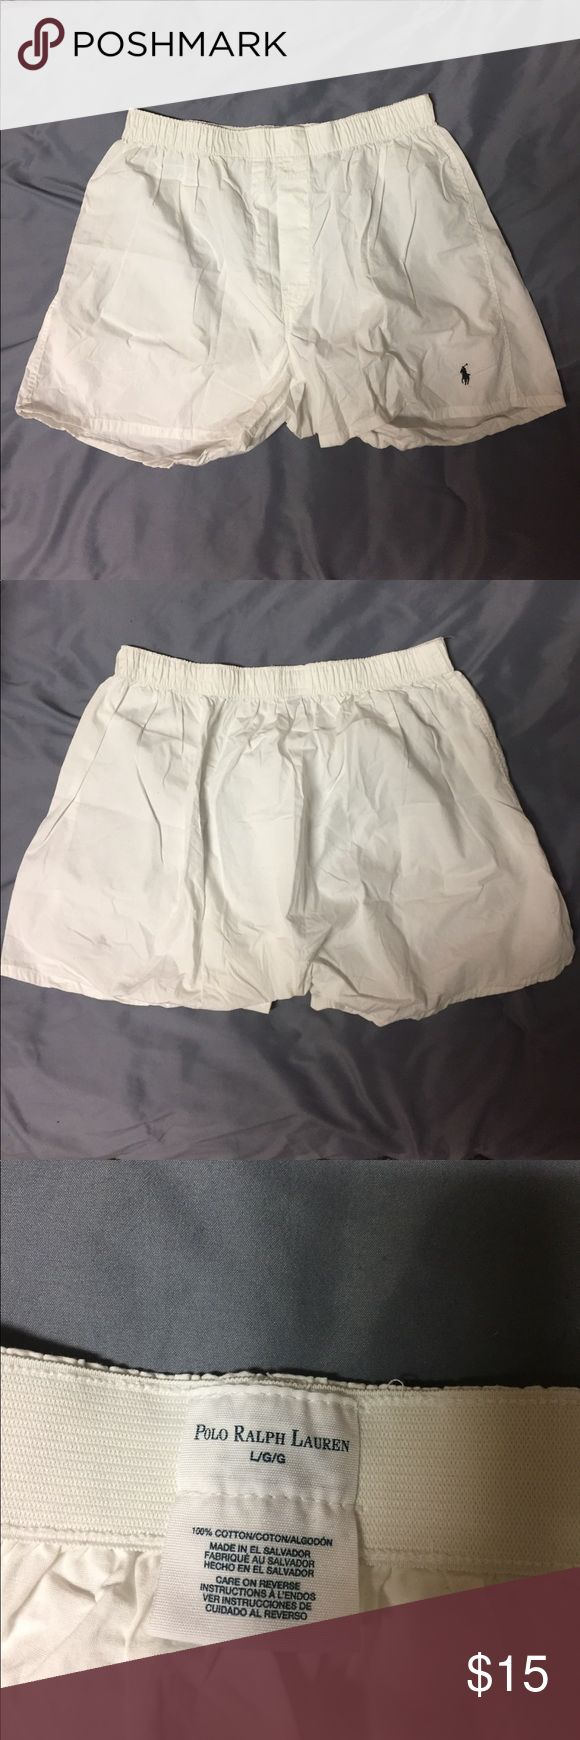 Polo Ralph Lauren Boxers (NWOT) white boxers from Polo Ralph Lauren. 100% cotton. Were tried on over a pair I was wearing - not for me. Polo by Ralph Lauren Underwear & Socks Boxers